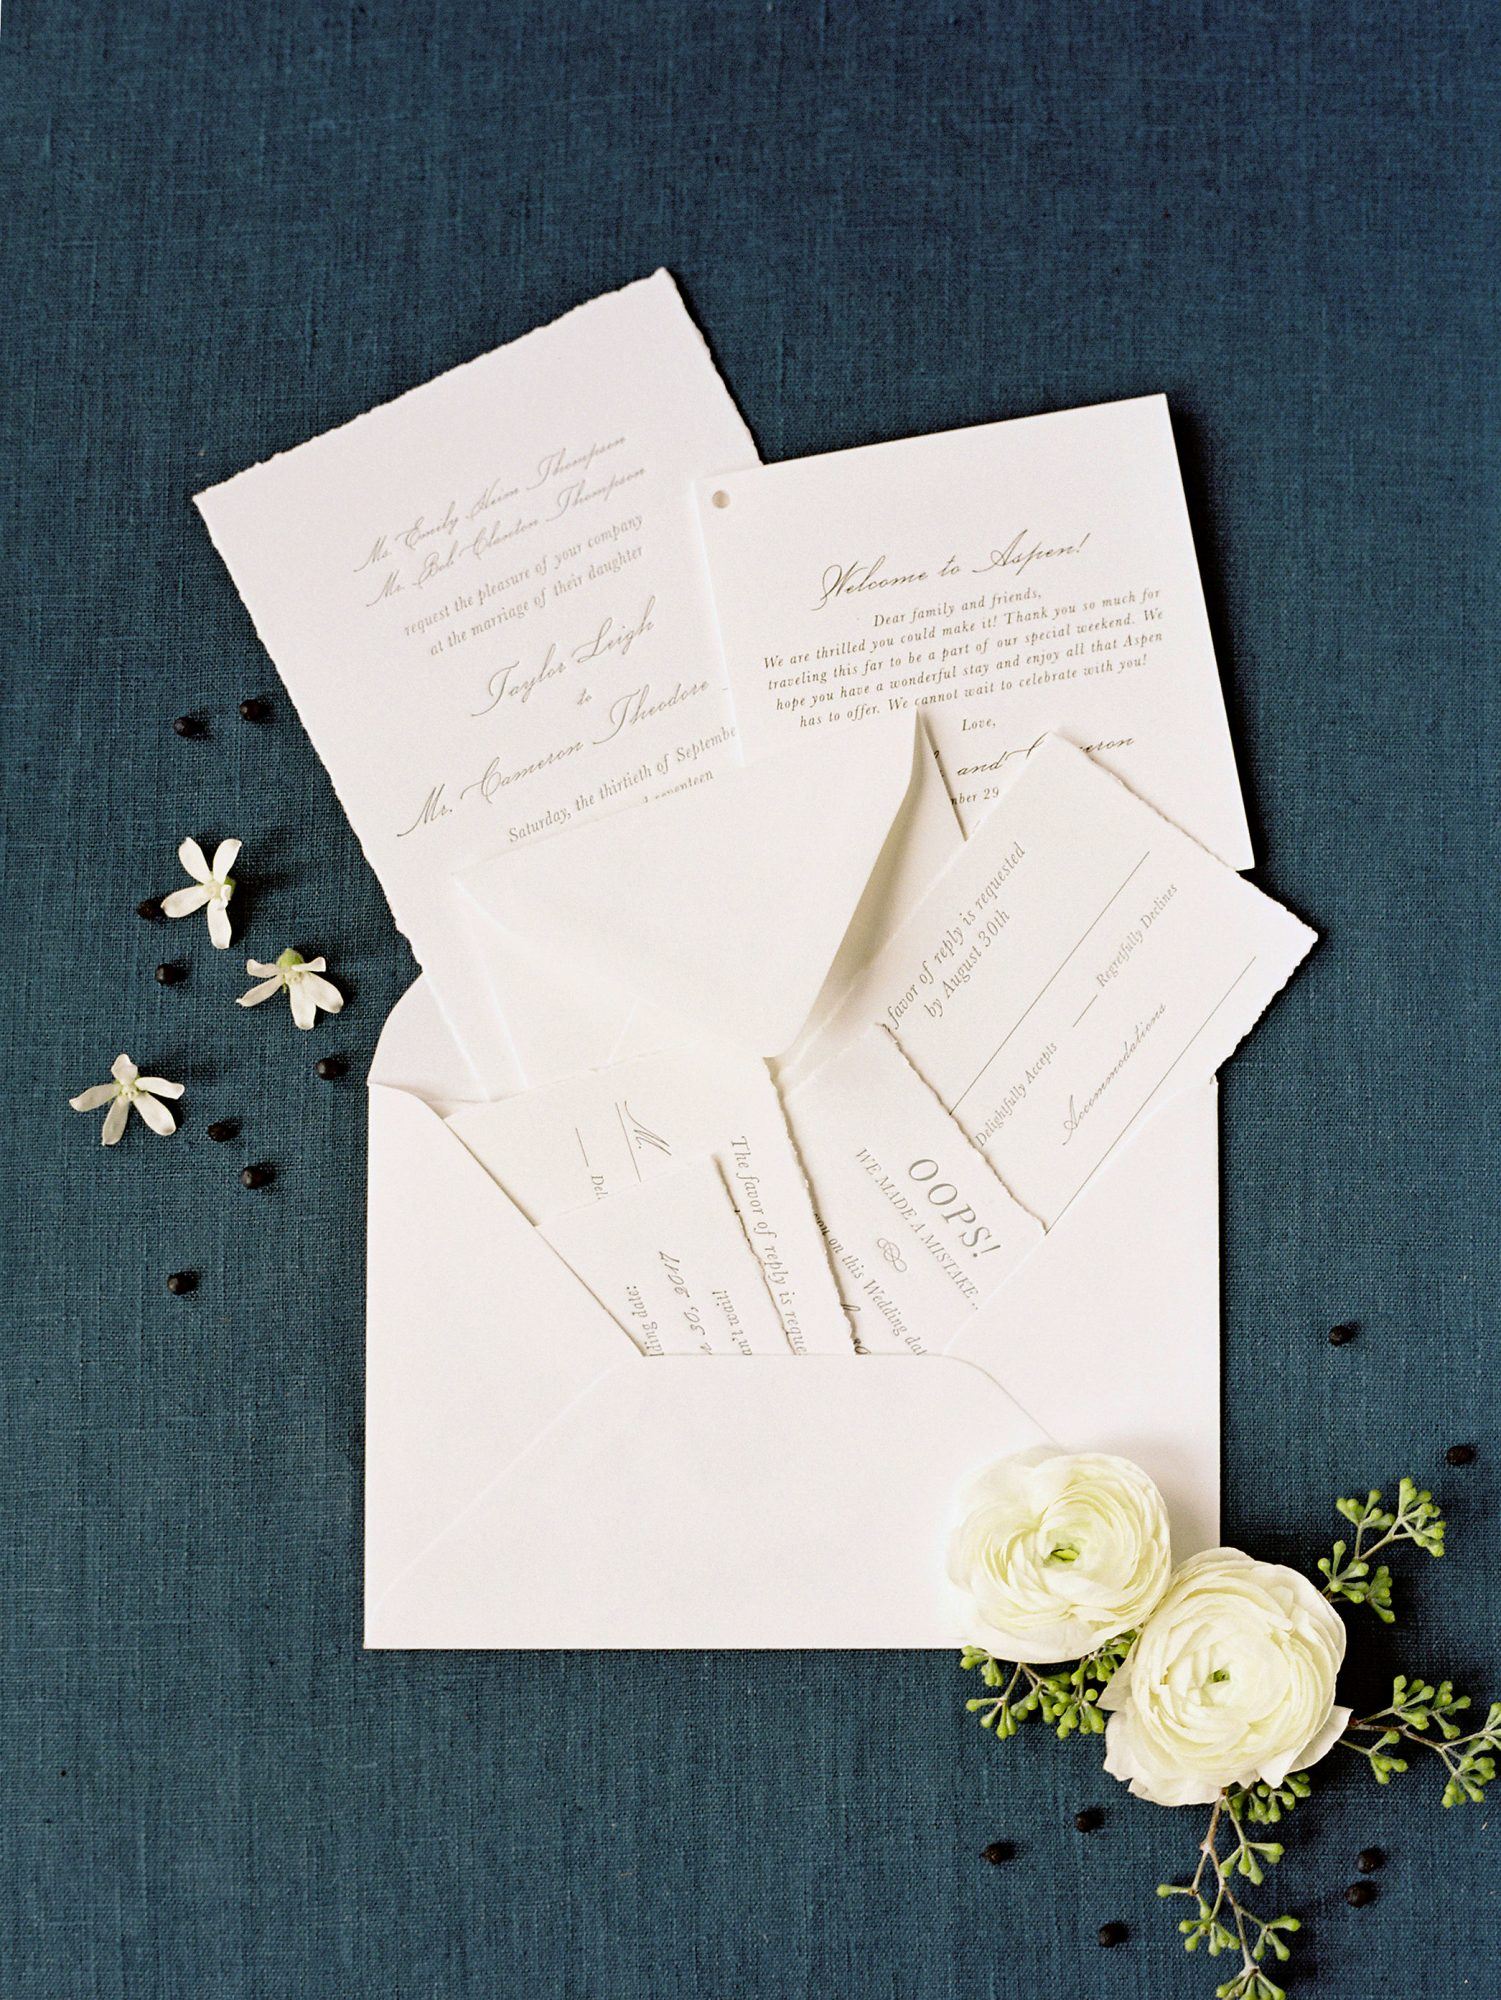 I mailed our invitations before realizing we didn't include the time our wedding begins! What's the best plan of action?